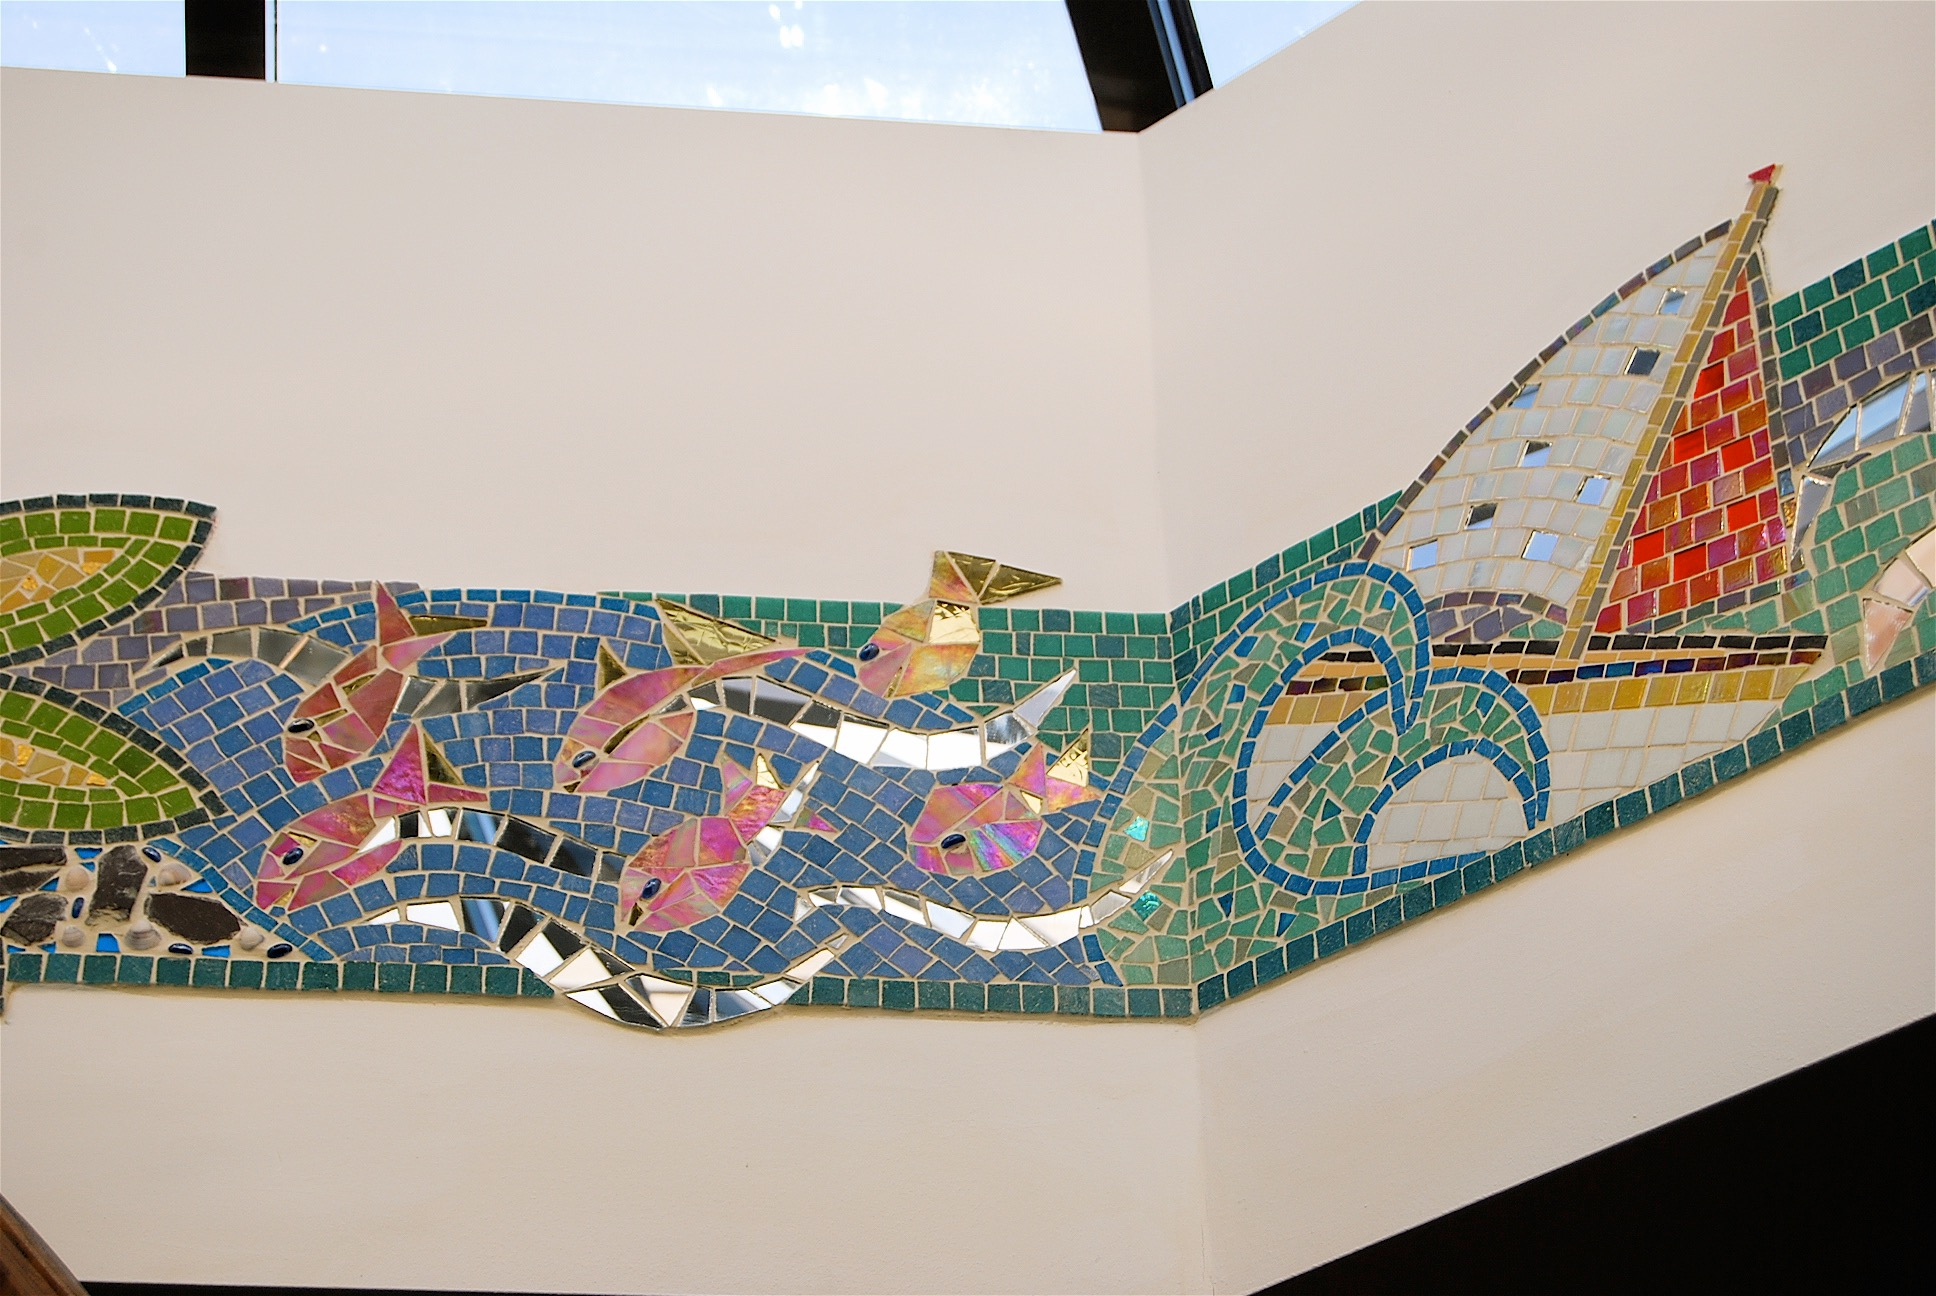 Mosaic murral commissison for Special Needs School